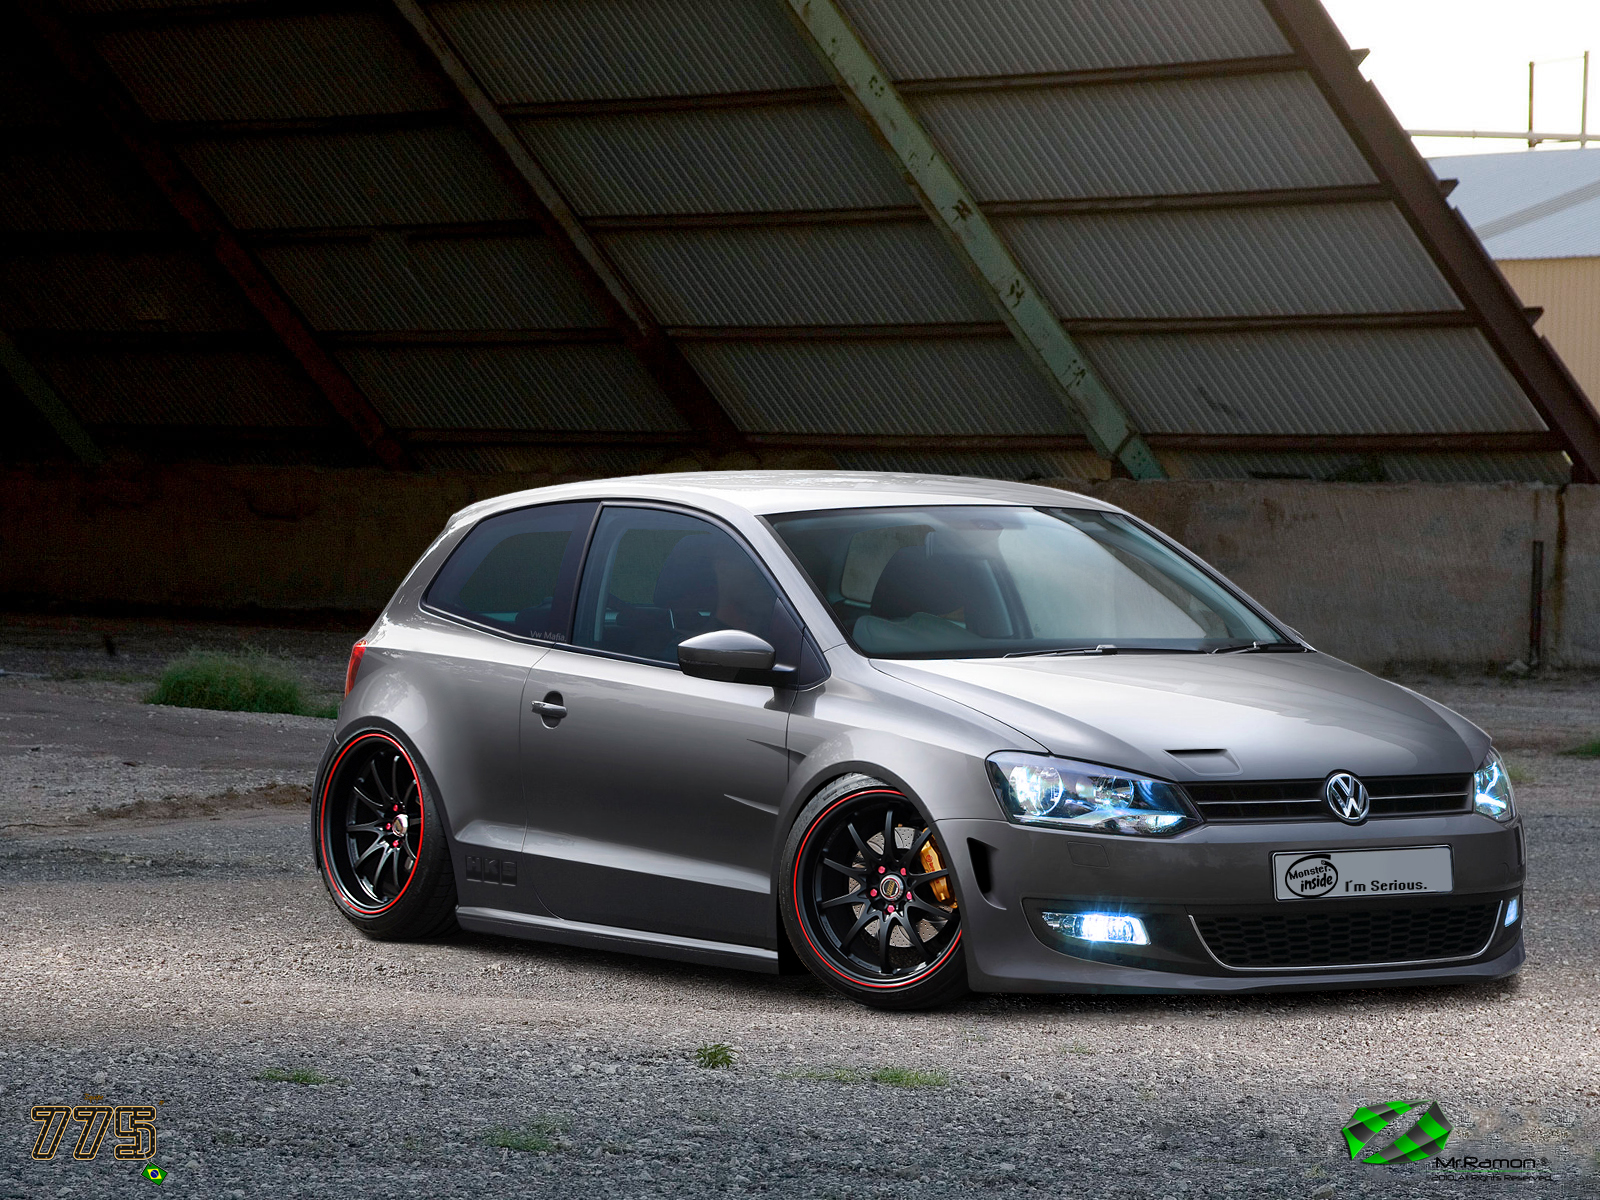 Blue Vw Golf Vi R With Silver Wheels 592 furthermore The Purple Volkswagen Golf Mk V 16v Kevin Uertz 177 together with 763  volkswagen Scirocco 7 as well Vw Golf Mk3 as well Vw Polo Street Tune 176338259. on 2013 volkswagen gti tuned